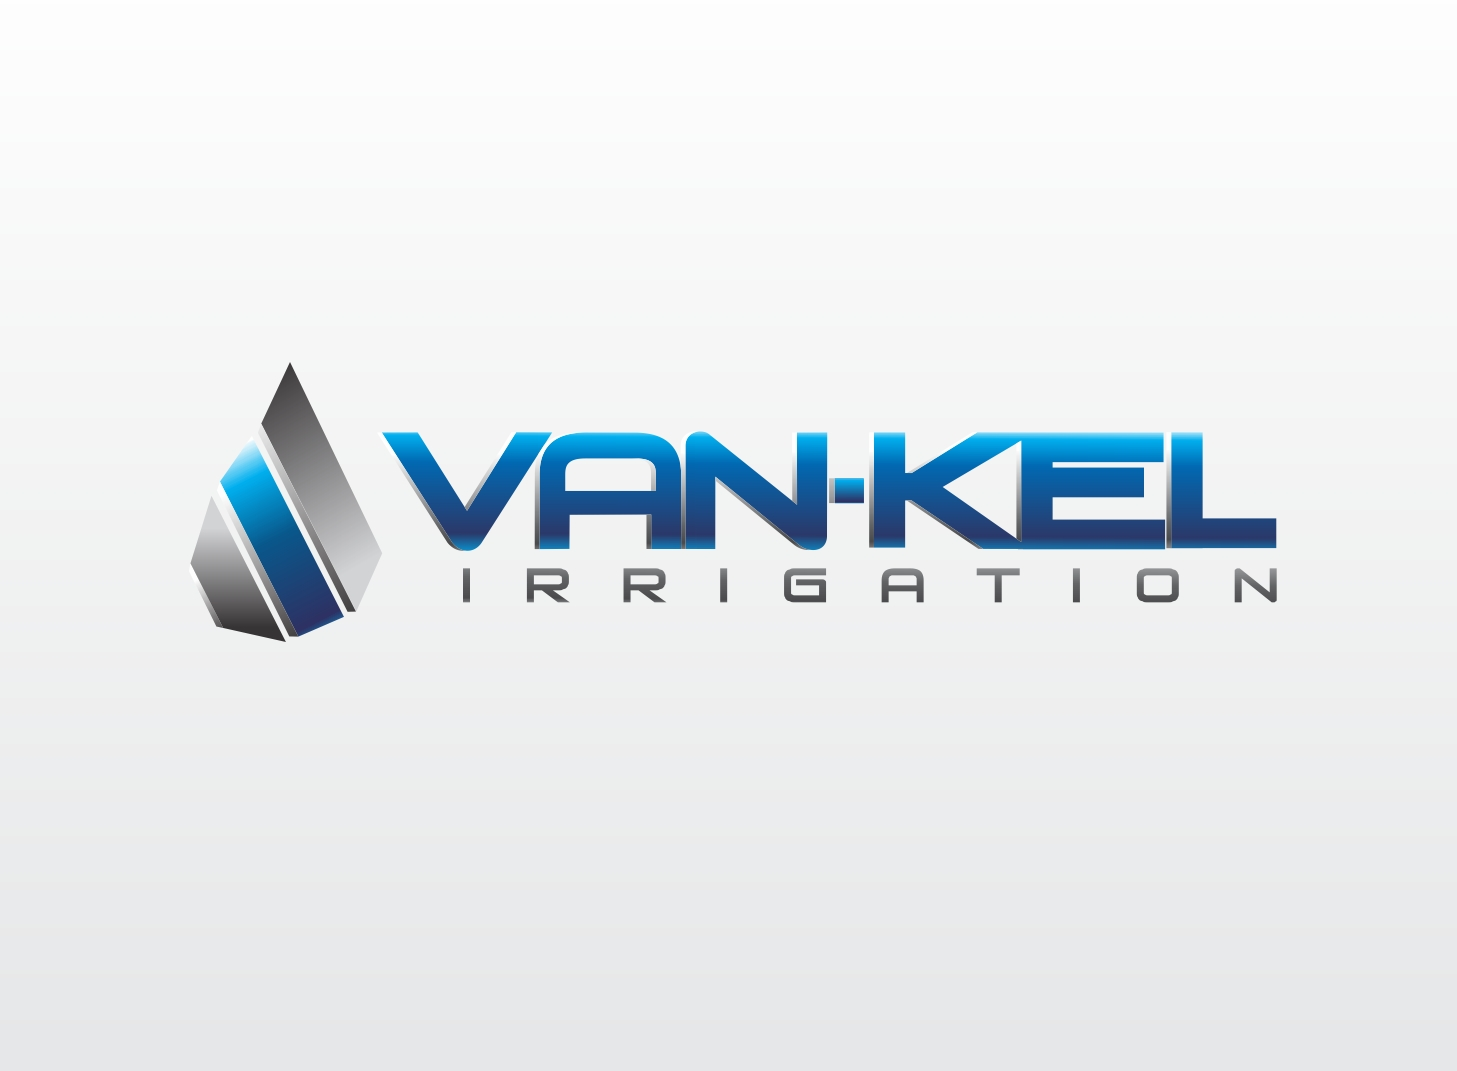 Logo Design by Zdravko Krulj - Entry No. 98 in the Logo Design Contest Van-Kel Irrigation Logo Design.